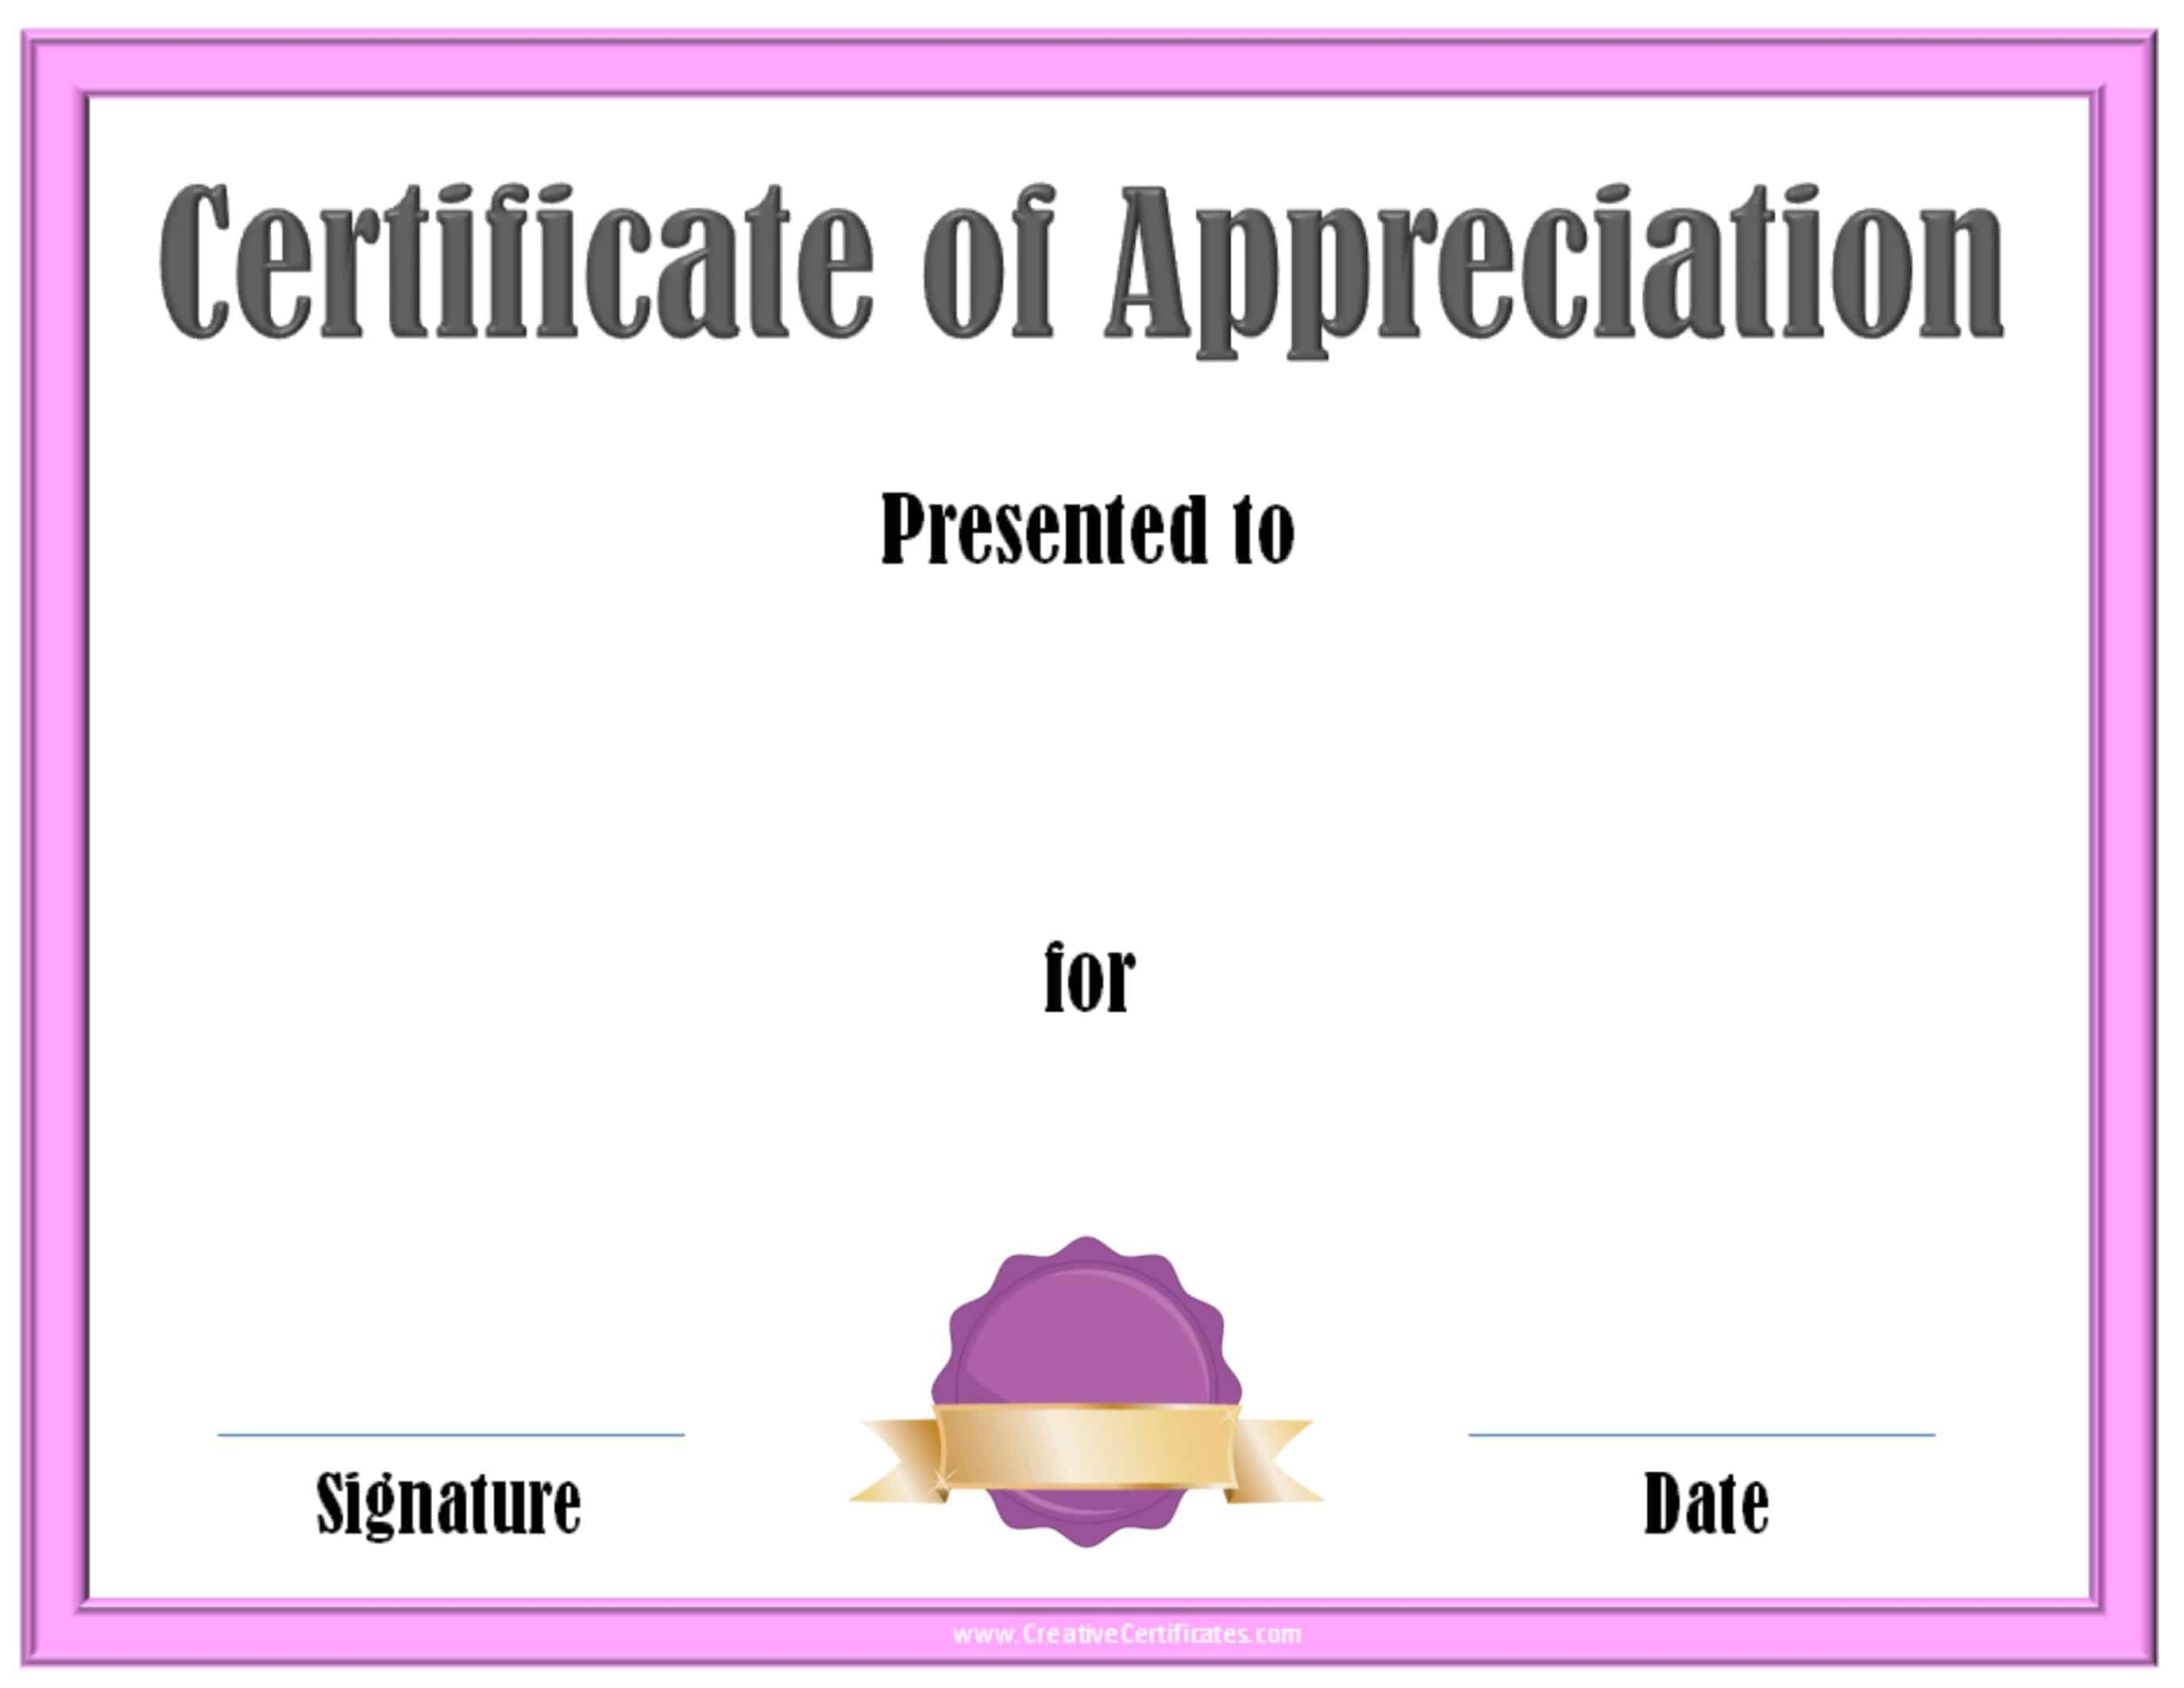 Certificate of Appreciation Template – Printable Certificate of Recognition